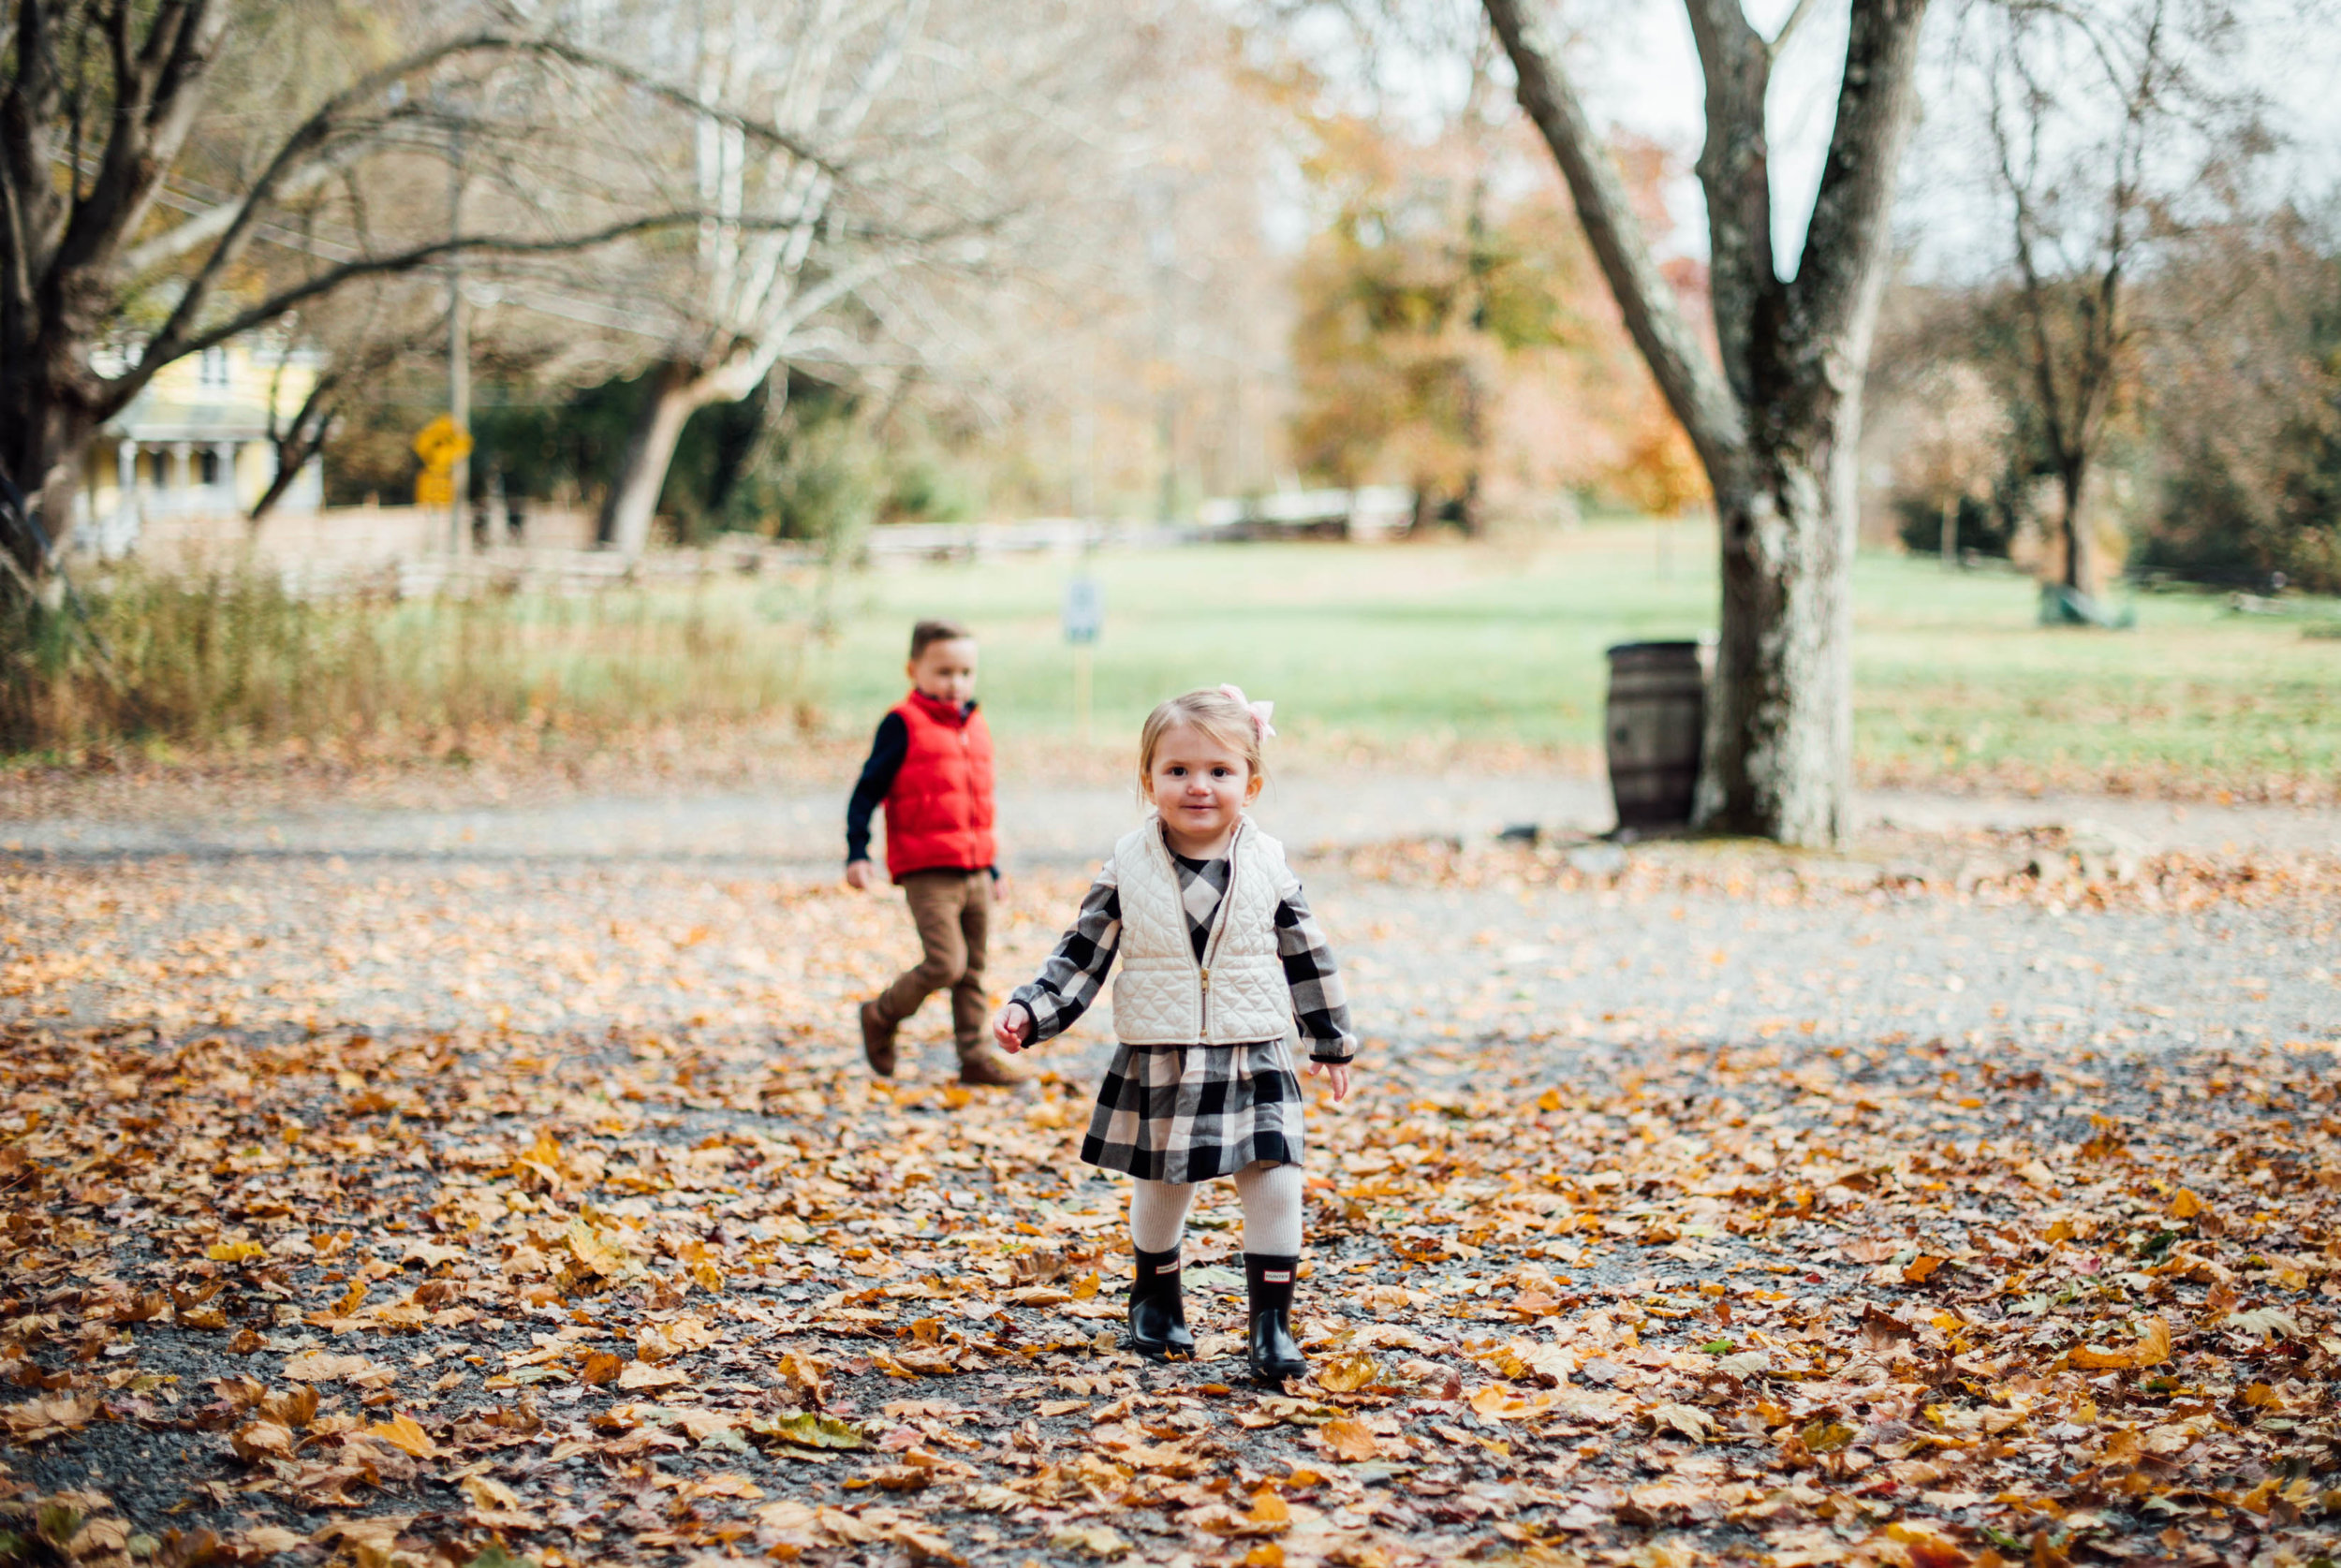 Little boy and girl running in the fall leaves